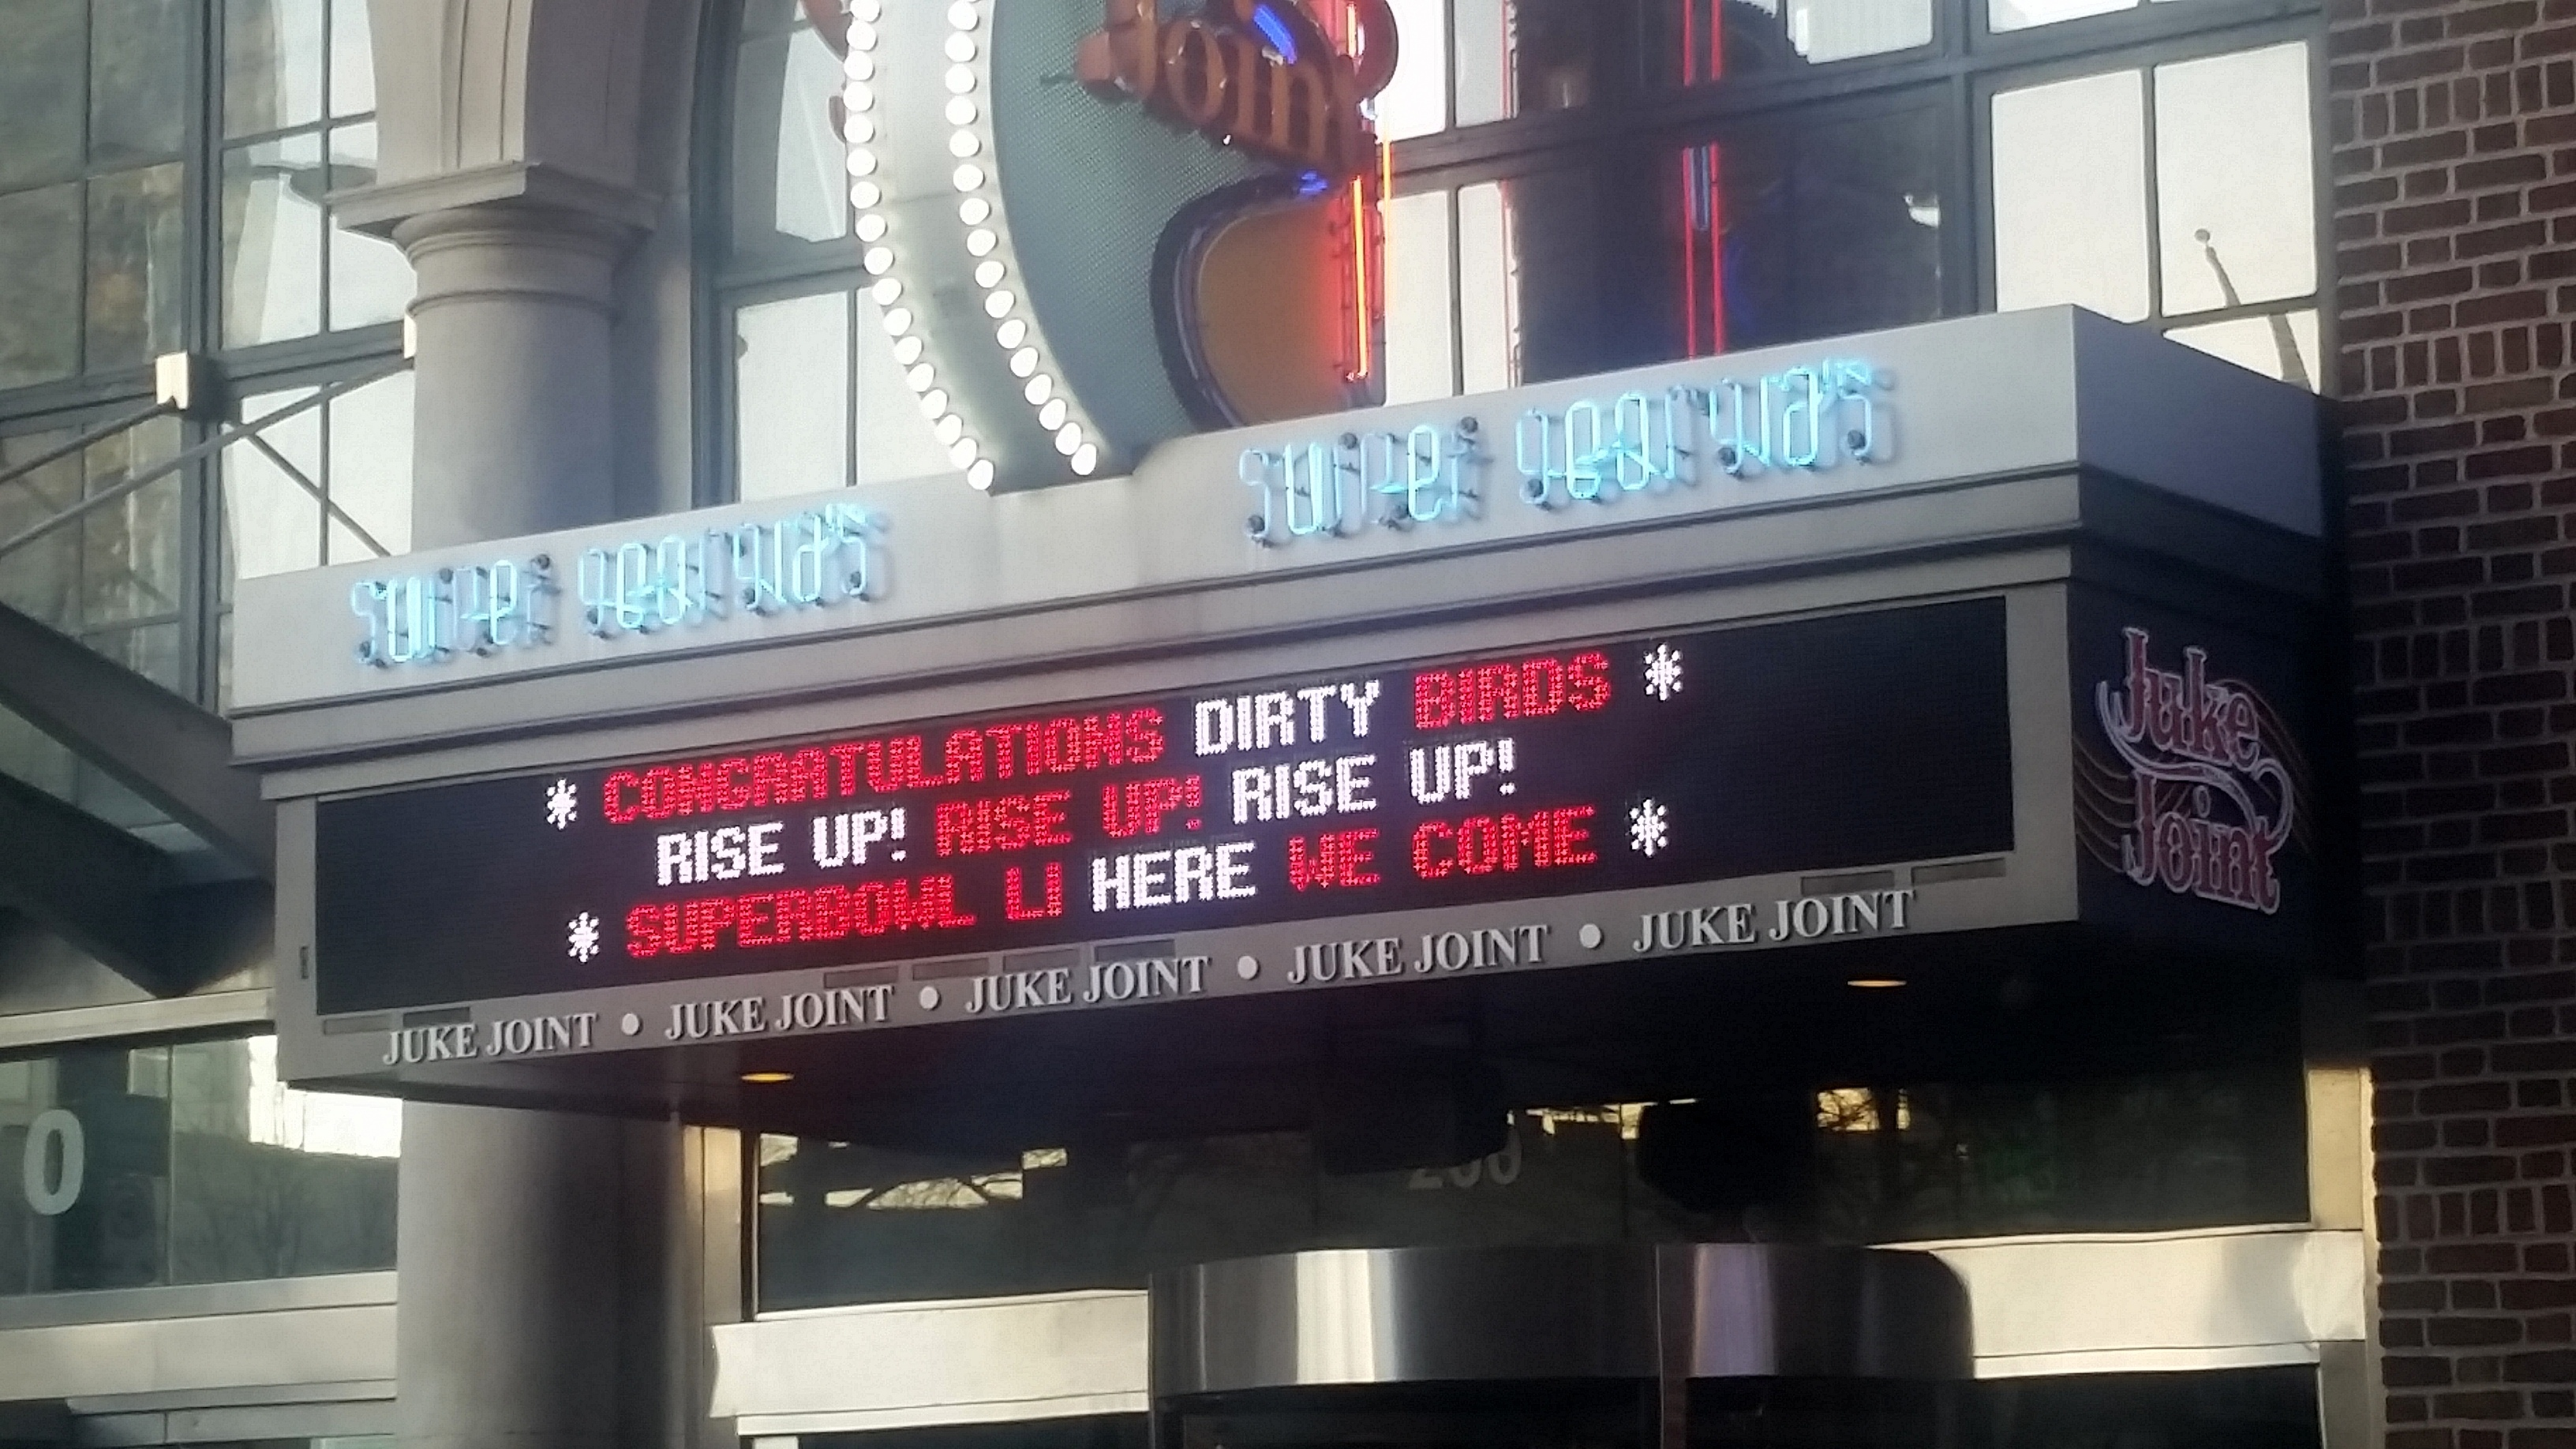 Super Bowl Fever has struck Georgia, and this sign at Juke Joint in Downtown Atlanta is no exception ahead of Sunday's game between the Falcons and the other team. (Go, Falcons!)